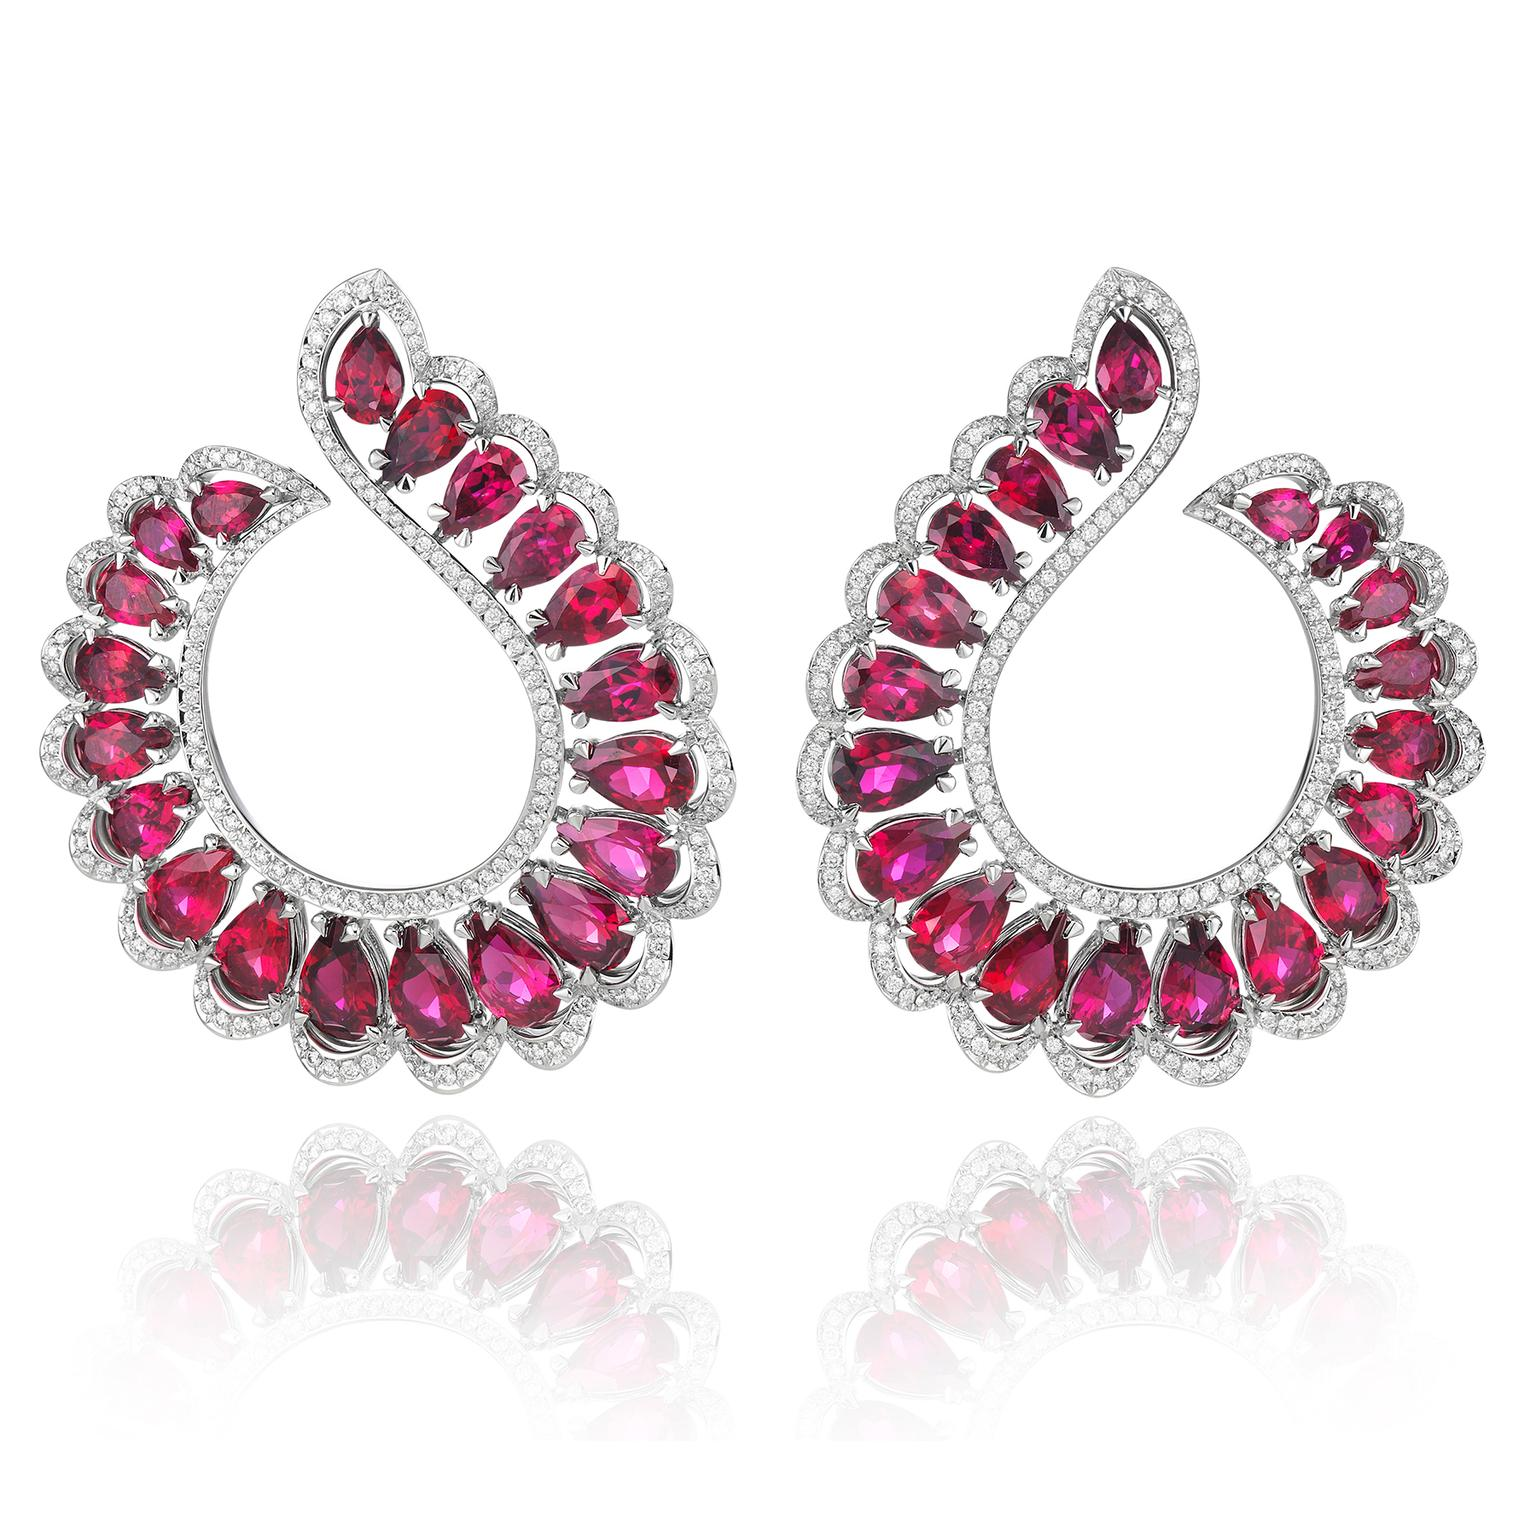 Chopard Precious pear-shaped ruby earrings